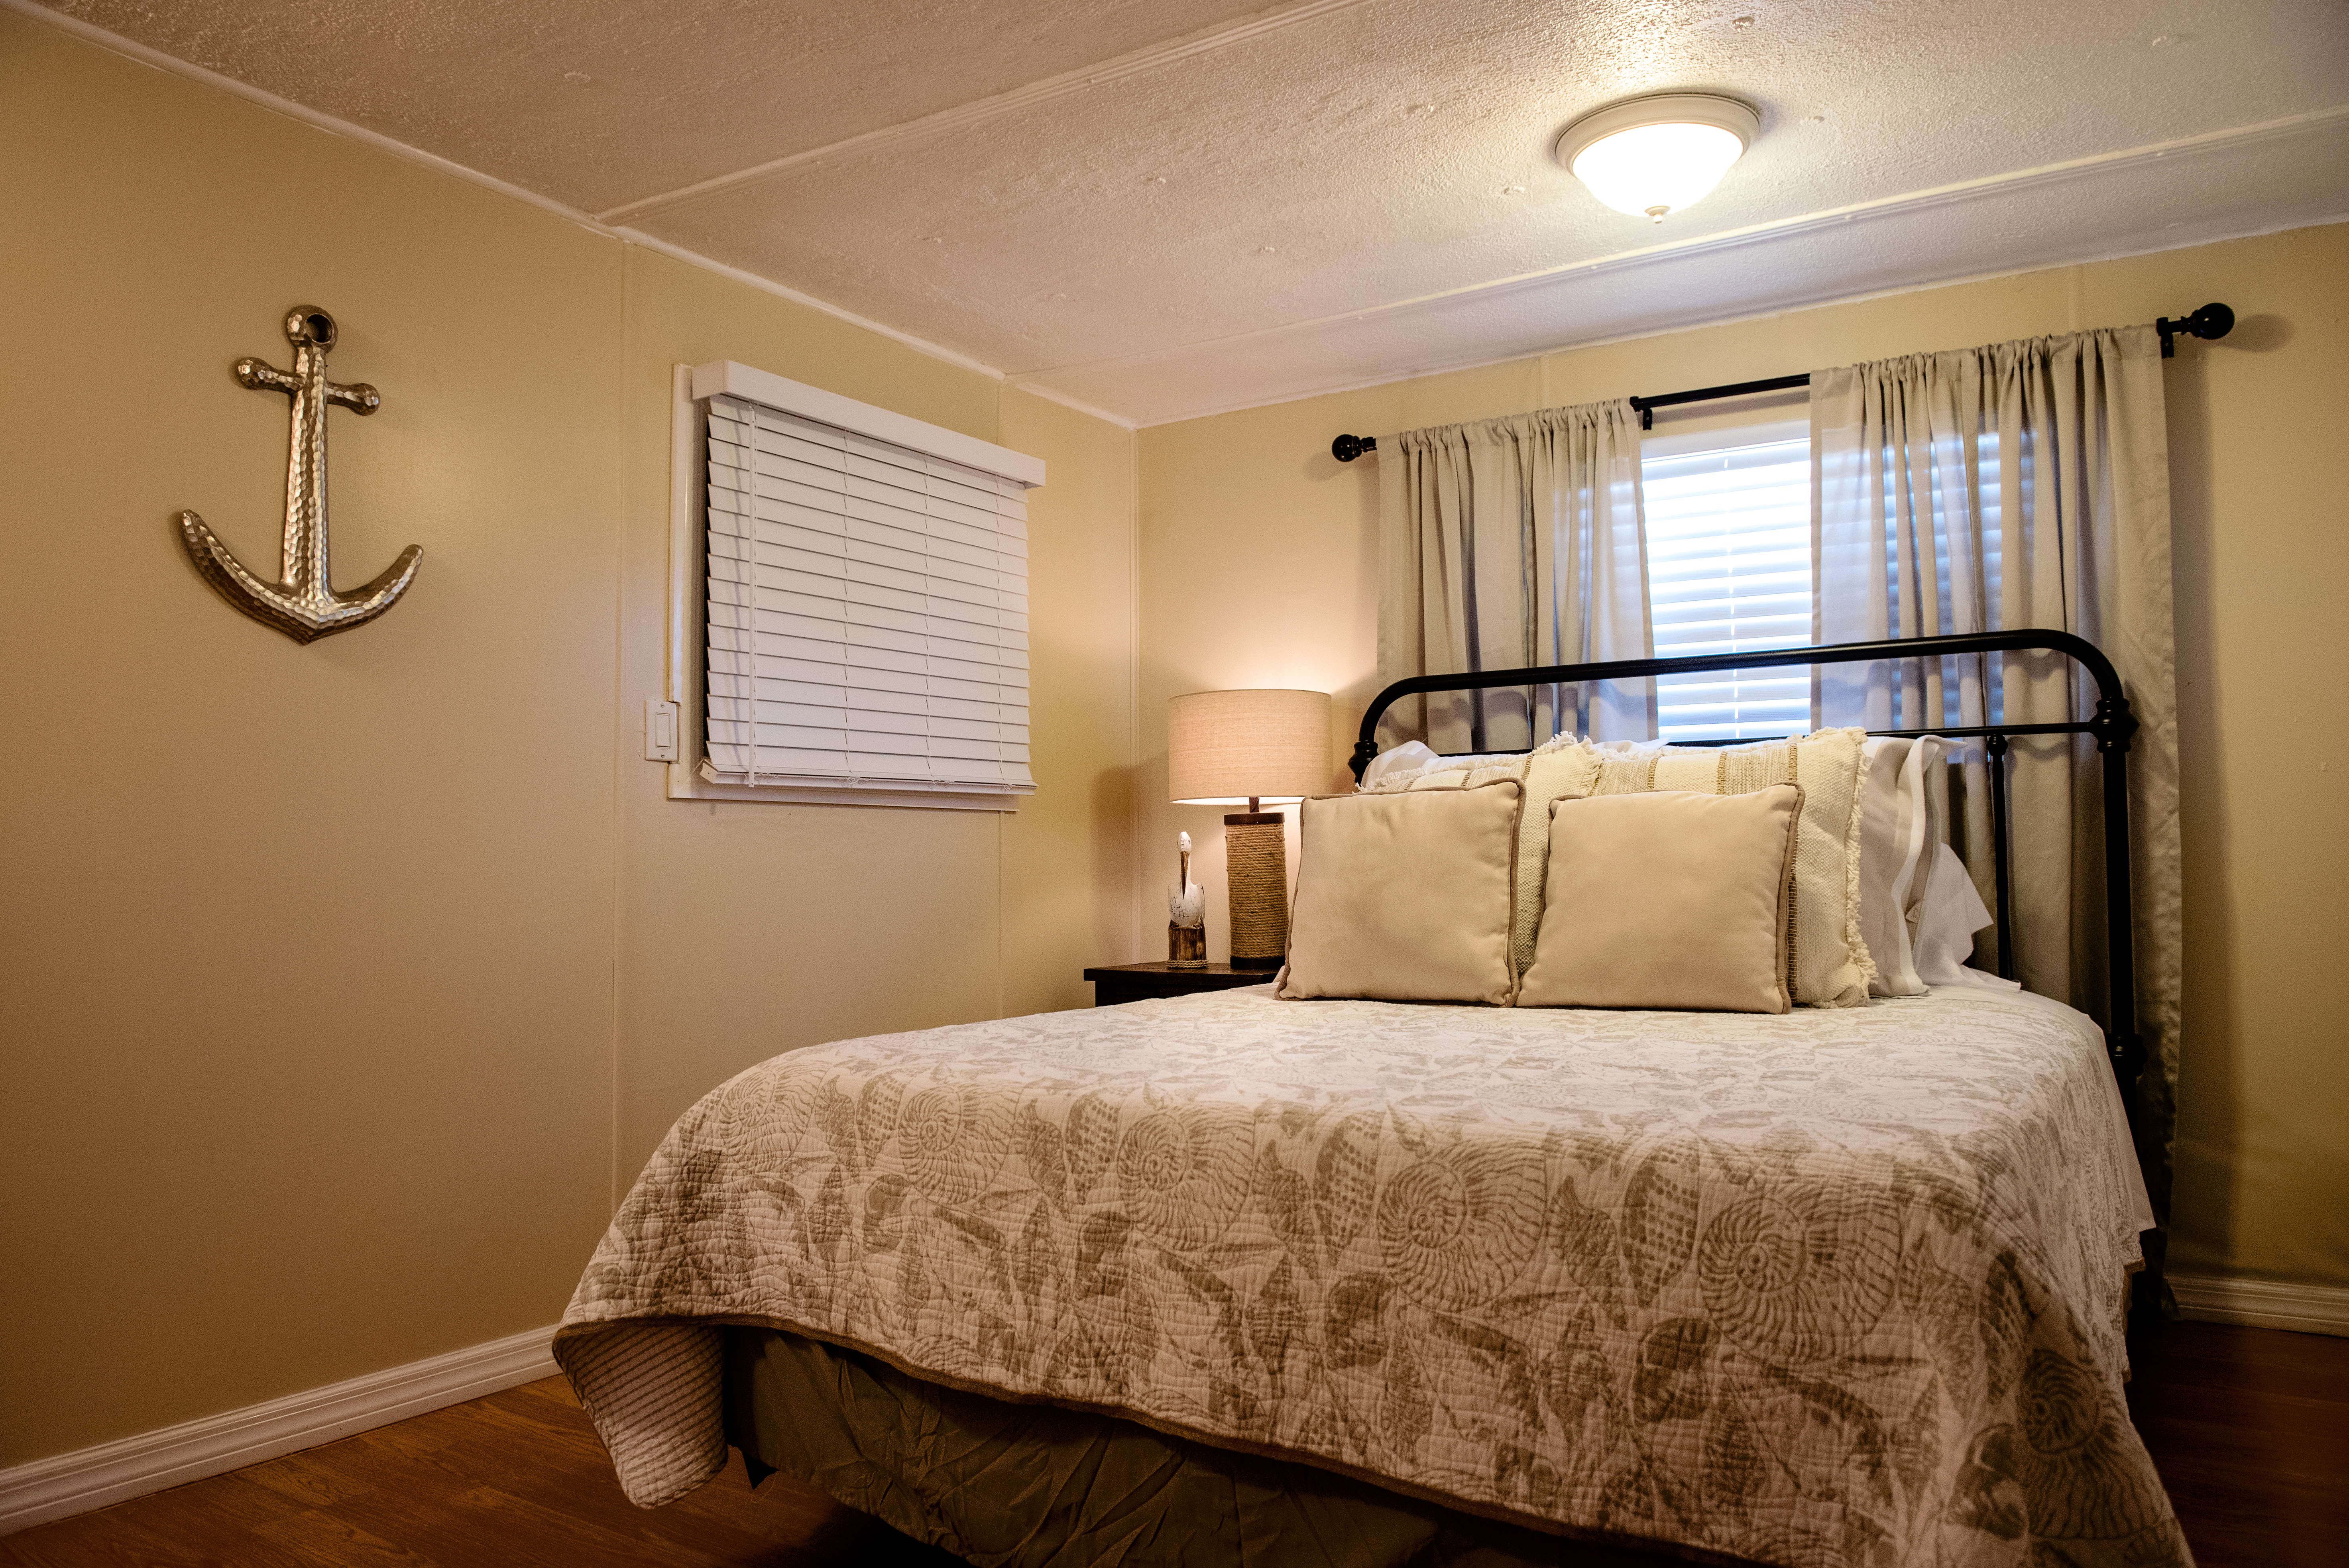 The queen size bedroom at the Sheepshead unit.